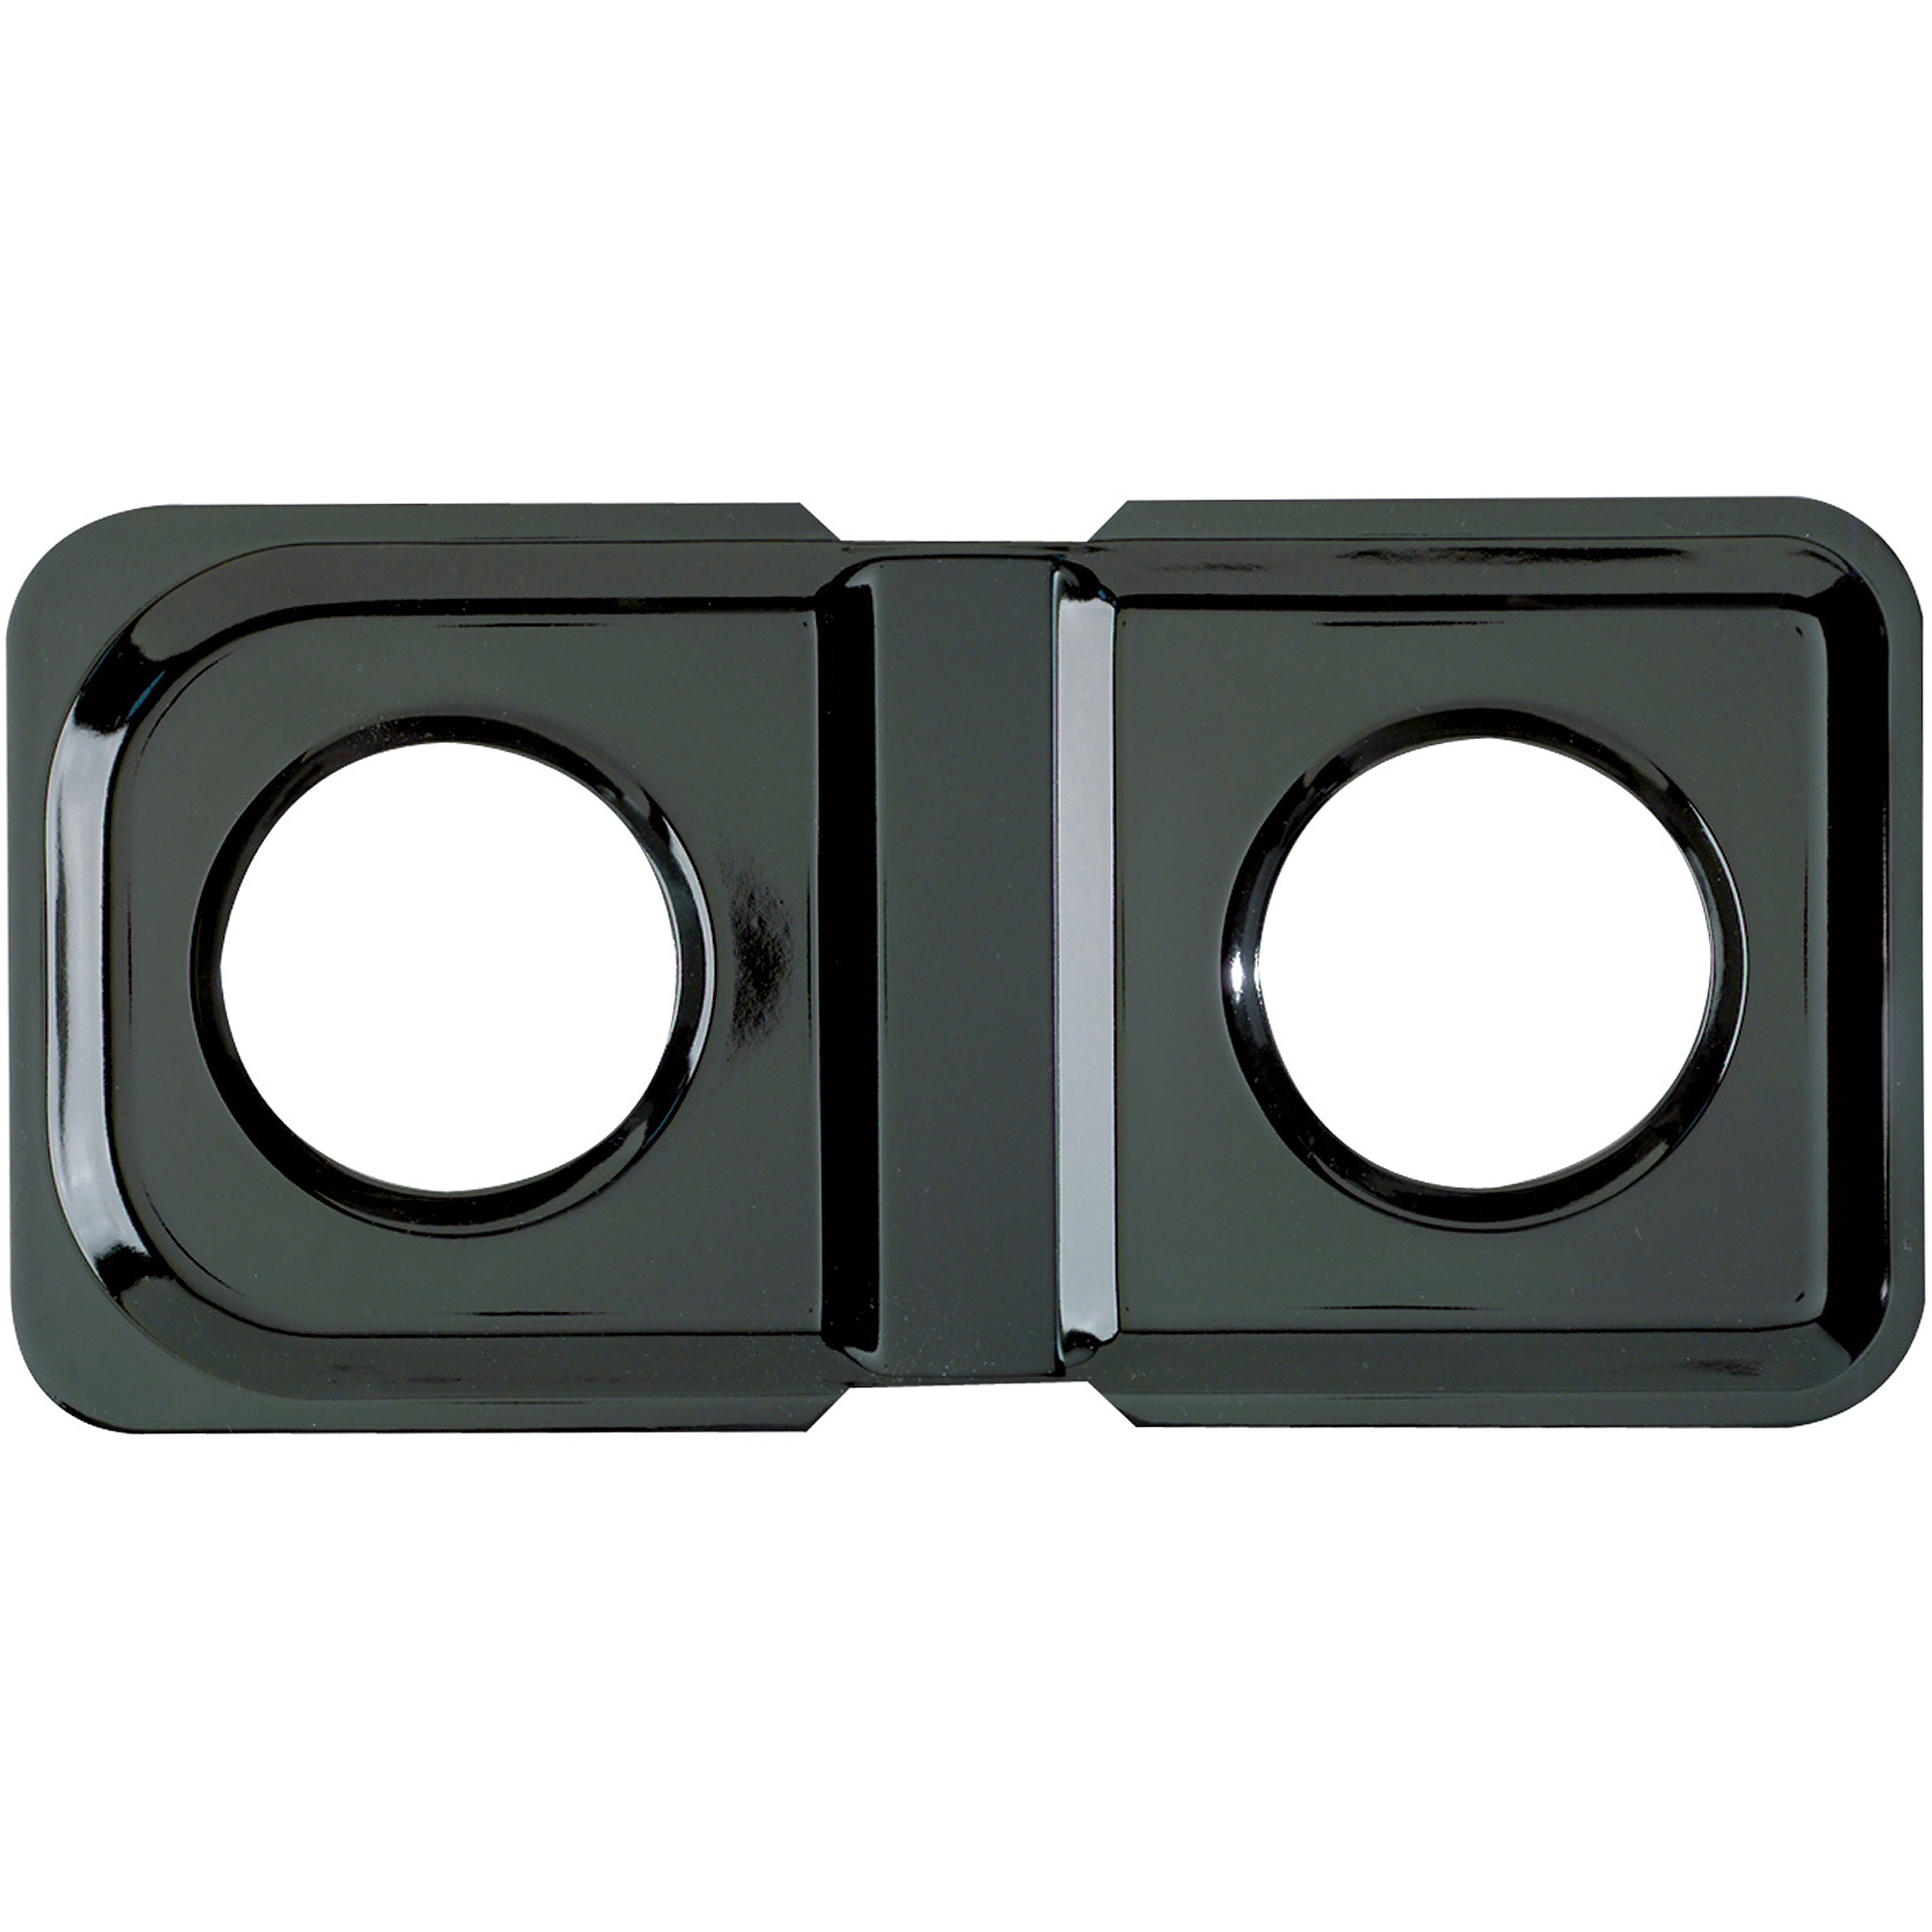 Range Kleen 1-Piece Drip Pan, Style K fits rectangle Burner Gas Ranges Amana/GE/Hotpoint/Kenmore/Magic Chef/Maytag, Black Porcelain